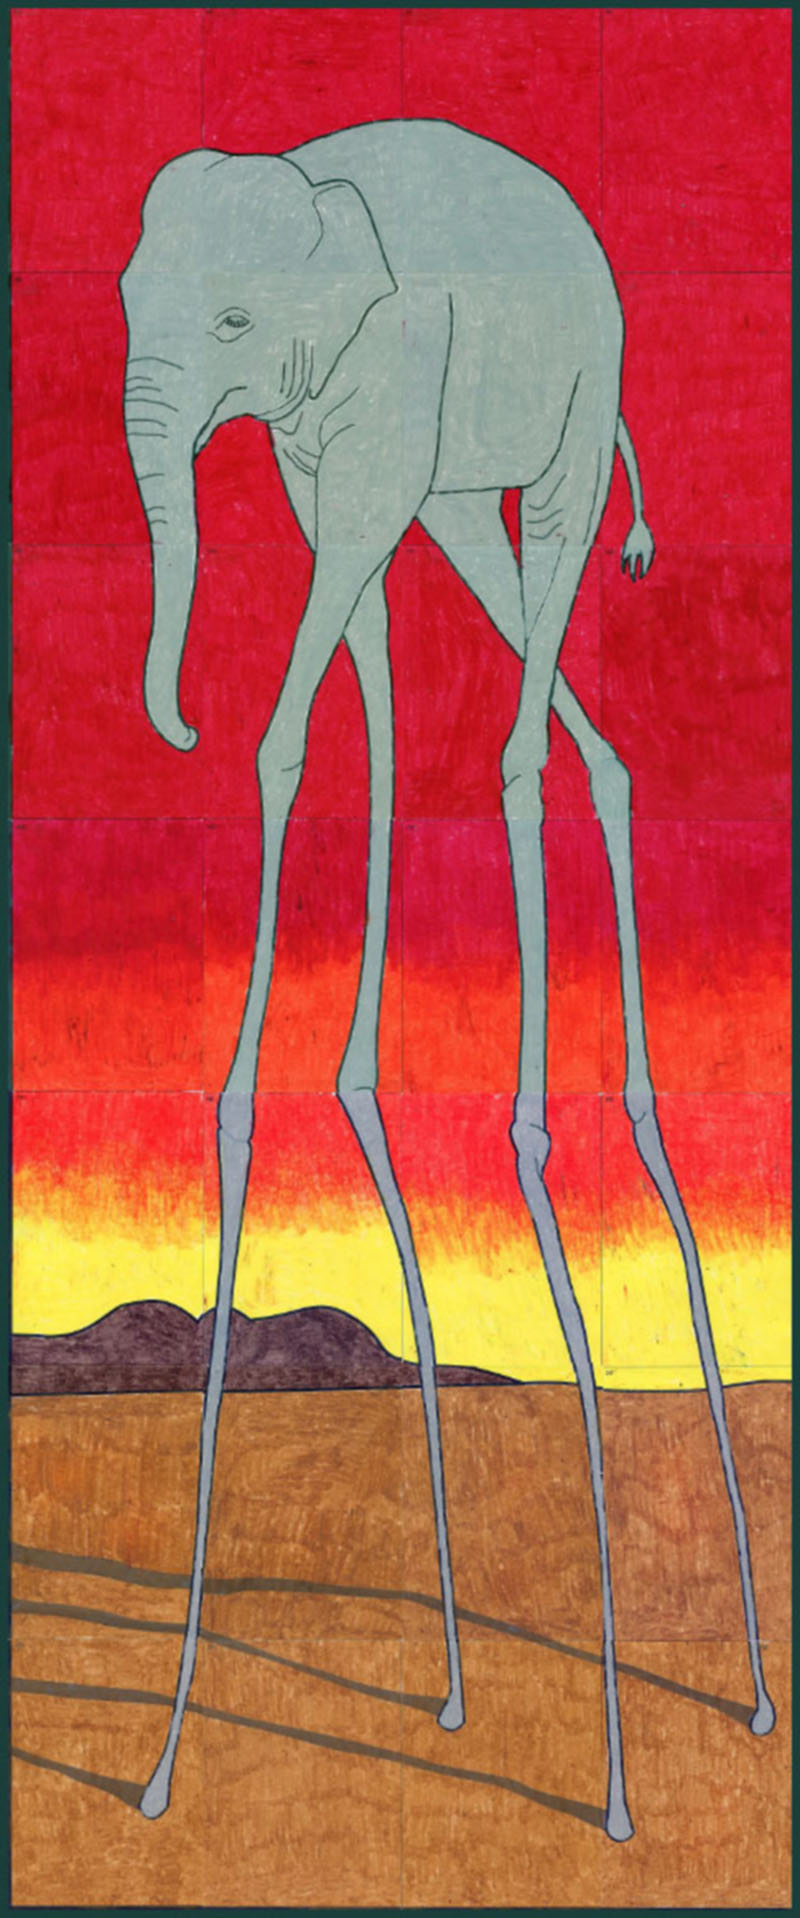 Salvador dali mural preview art projects for kids for Children s mural artist